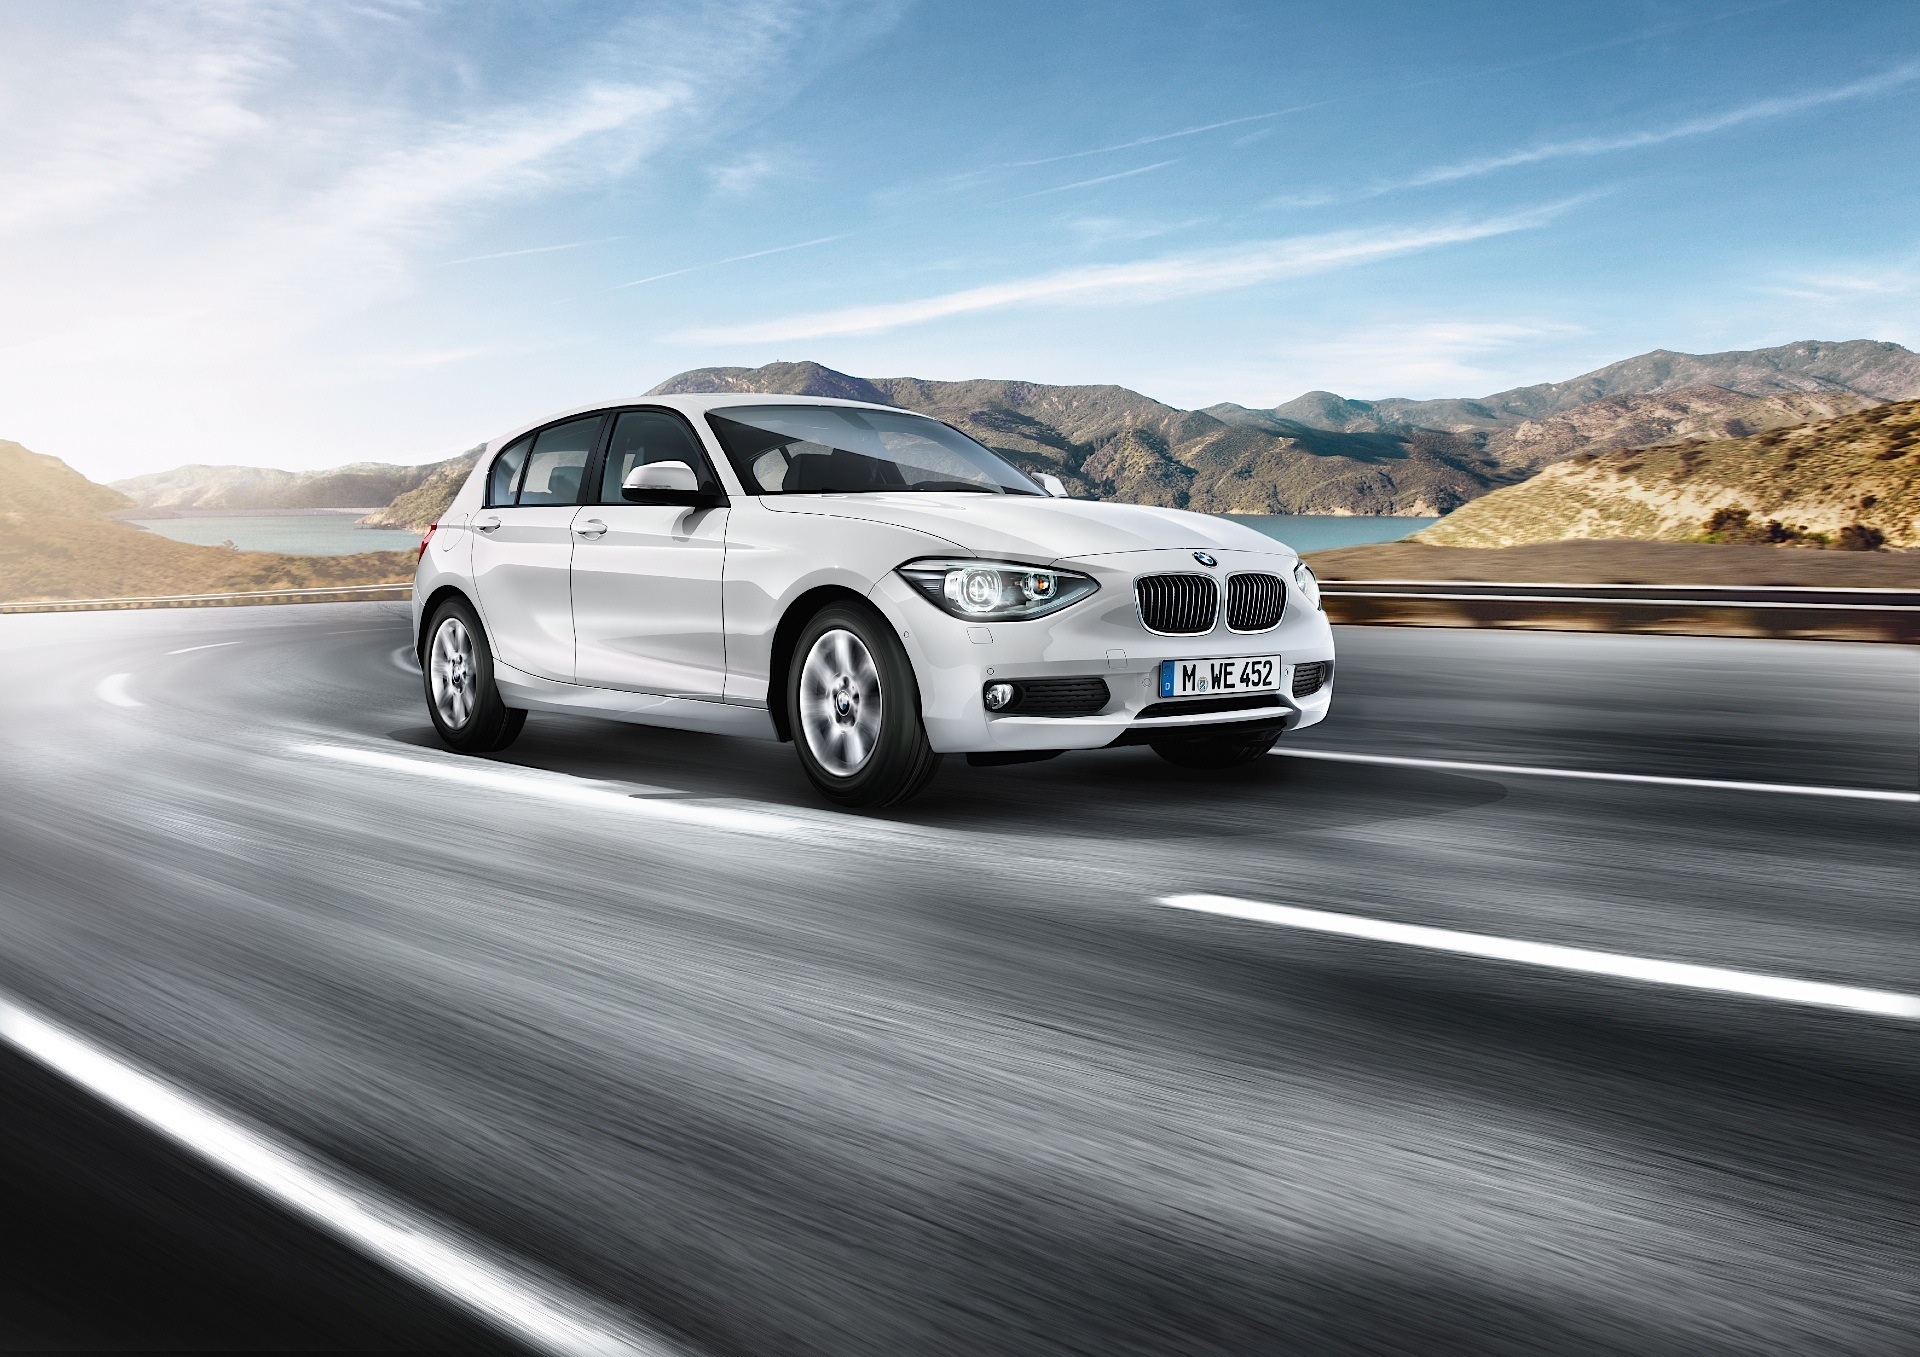 bmw 1 series f20 specs 2011 2012 2013 2014 2015. Black Bedroom Furniture Sets. Home Design Ideas